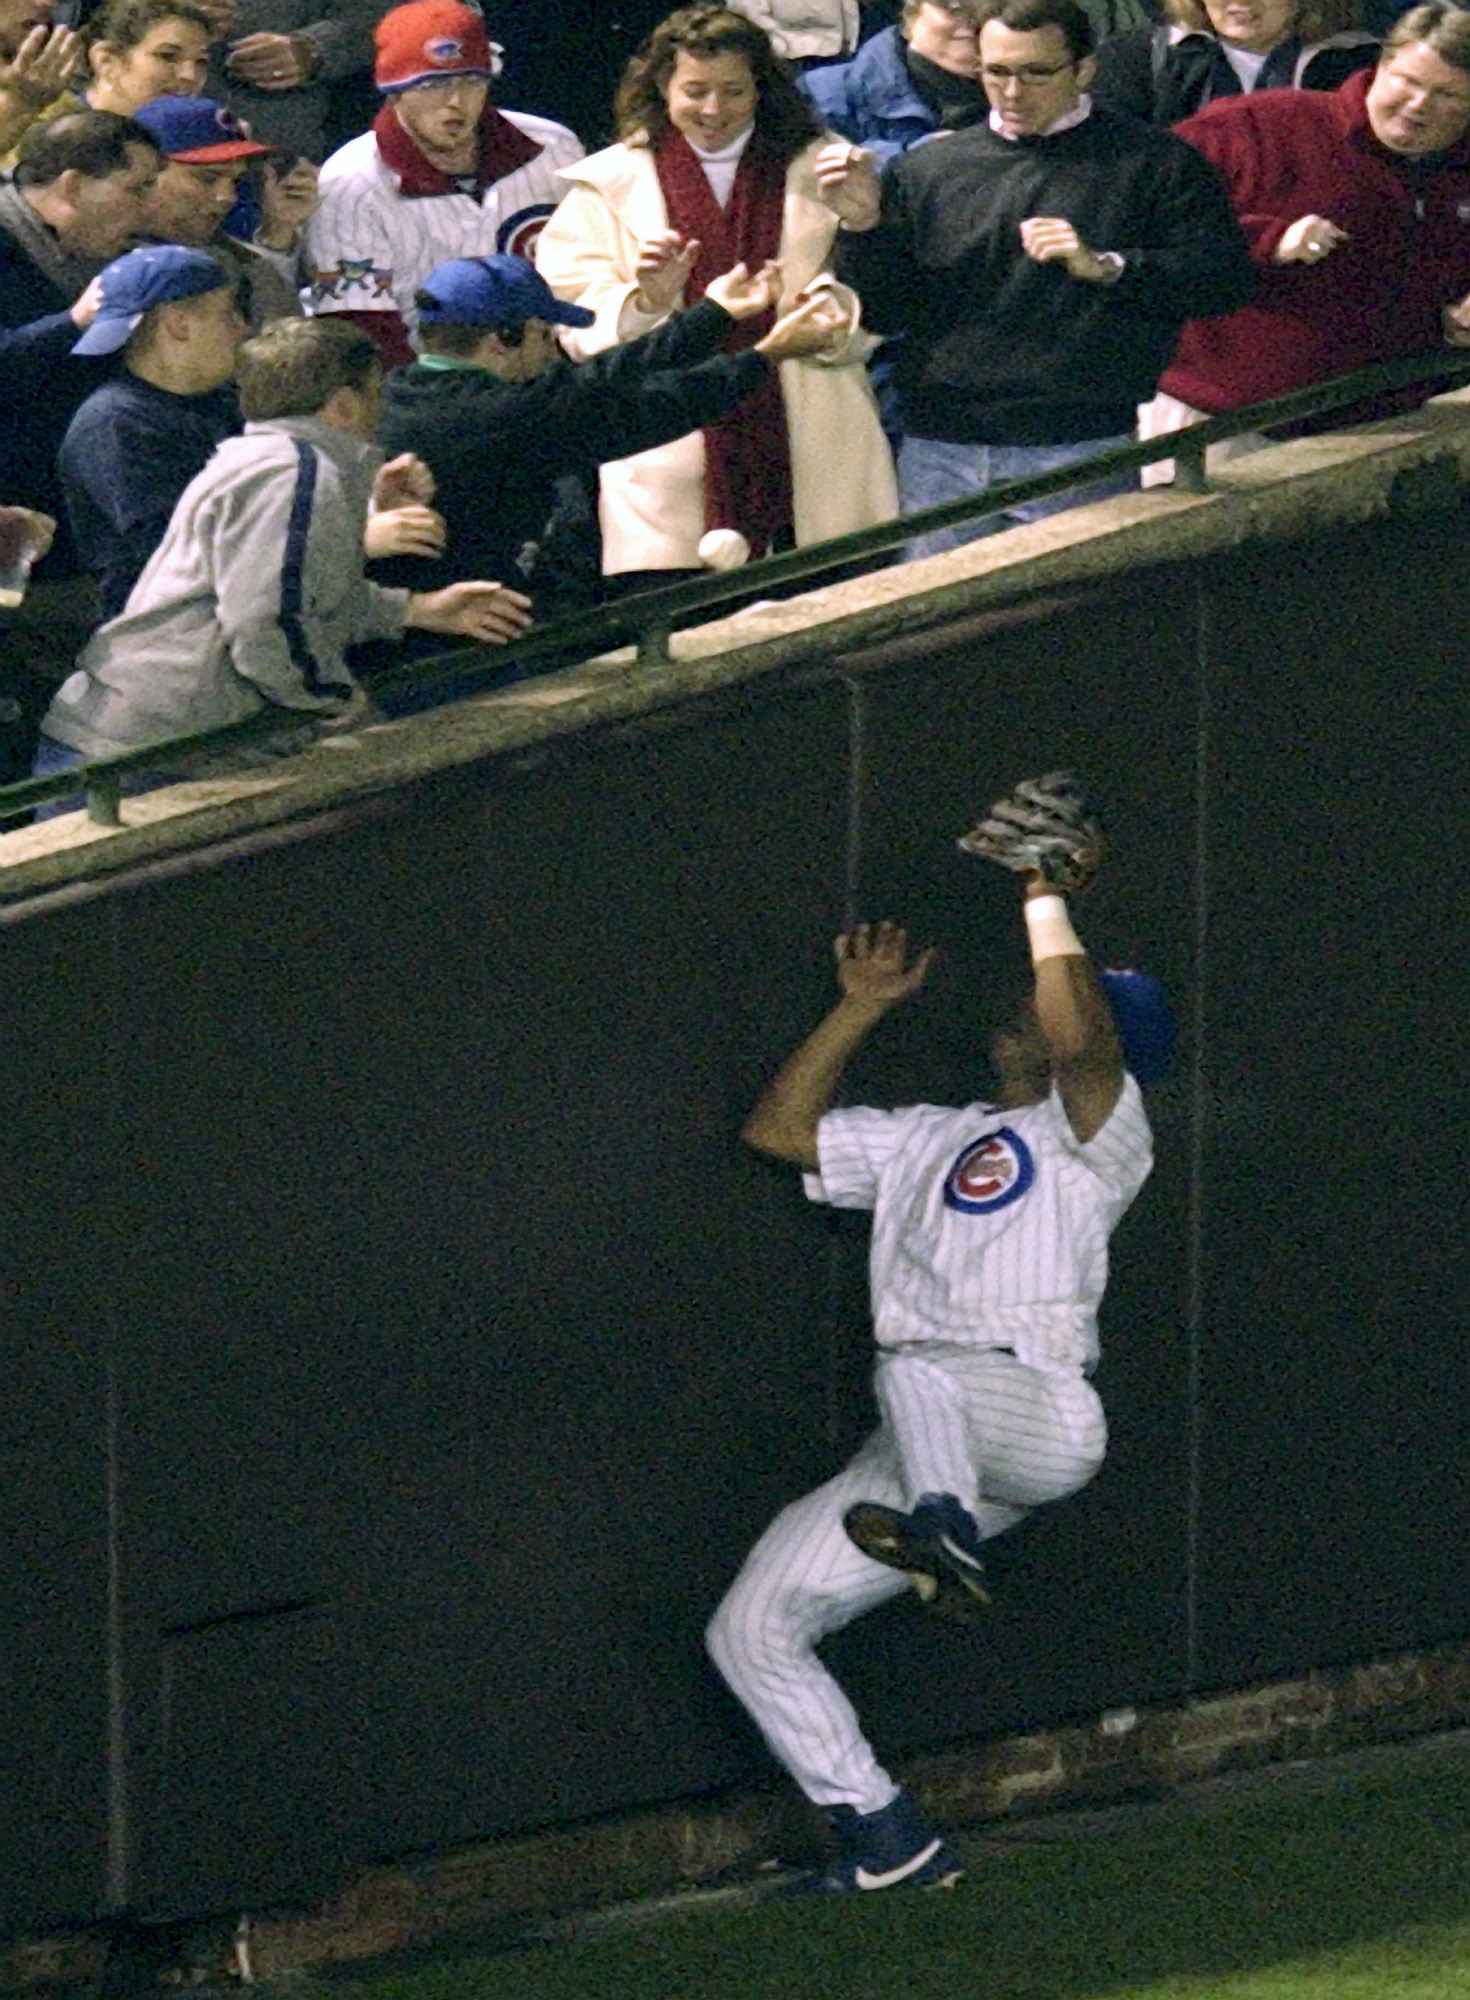 With Steve Bartman Gesture Cubs Take Focus Off Night Game